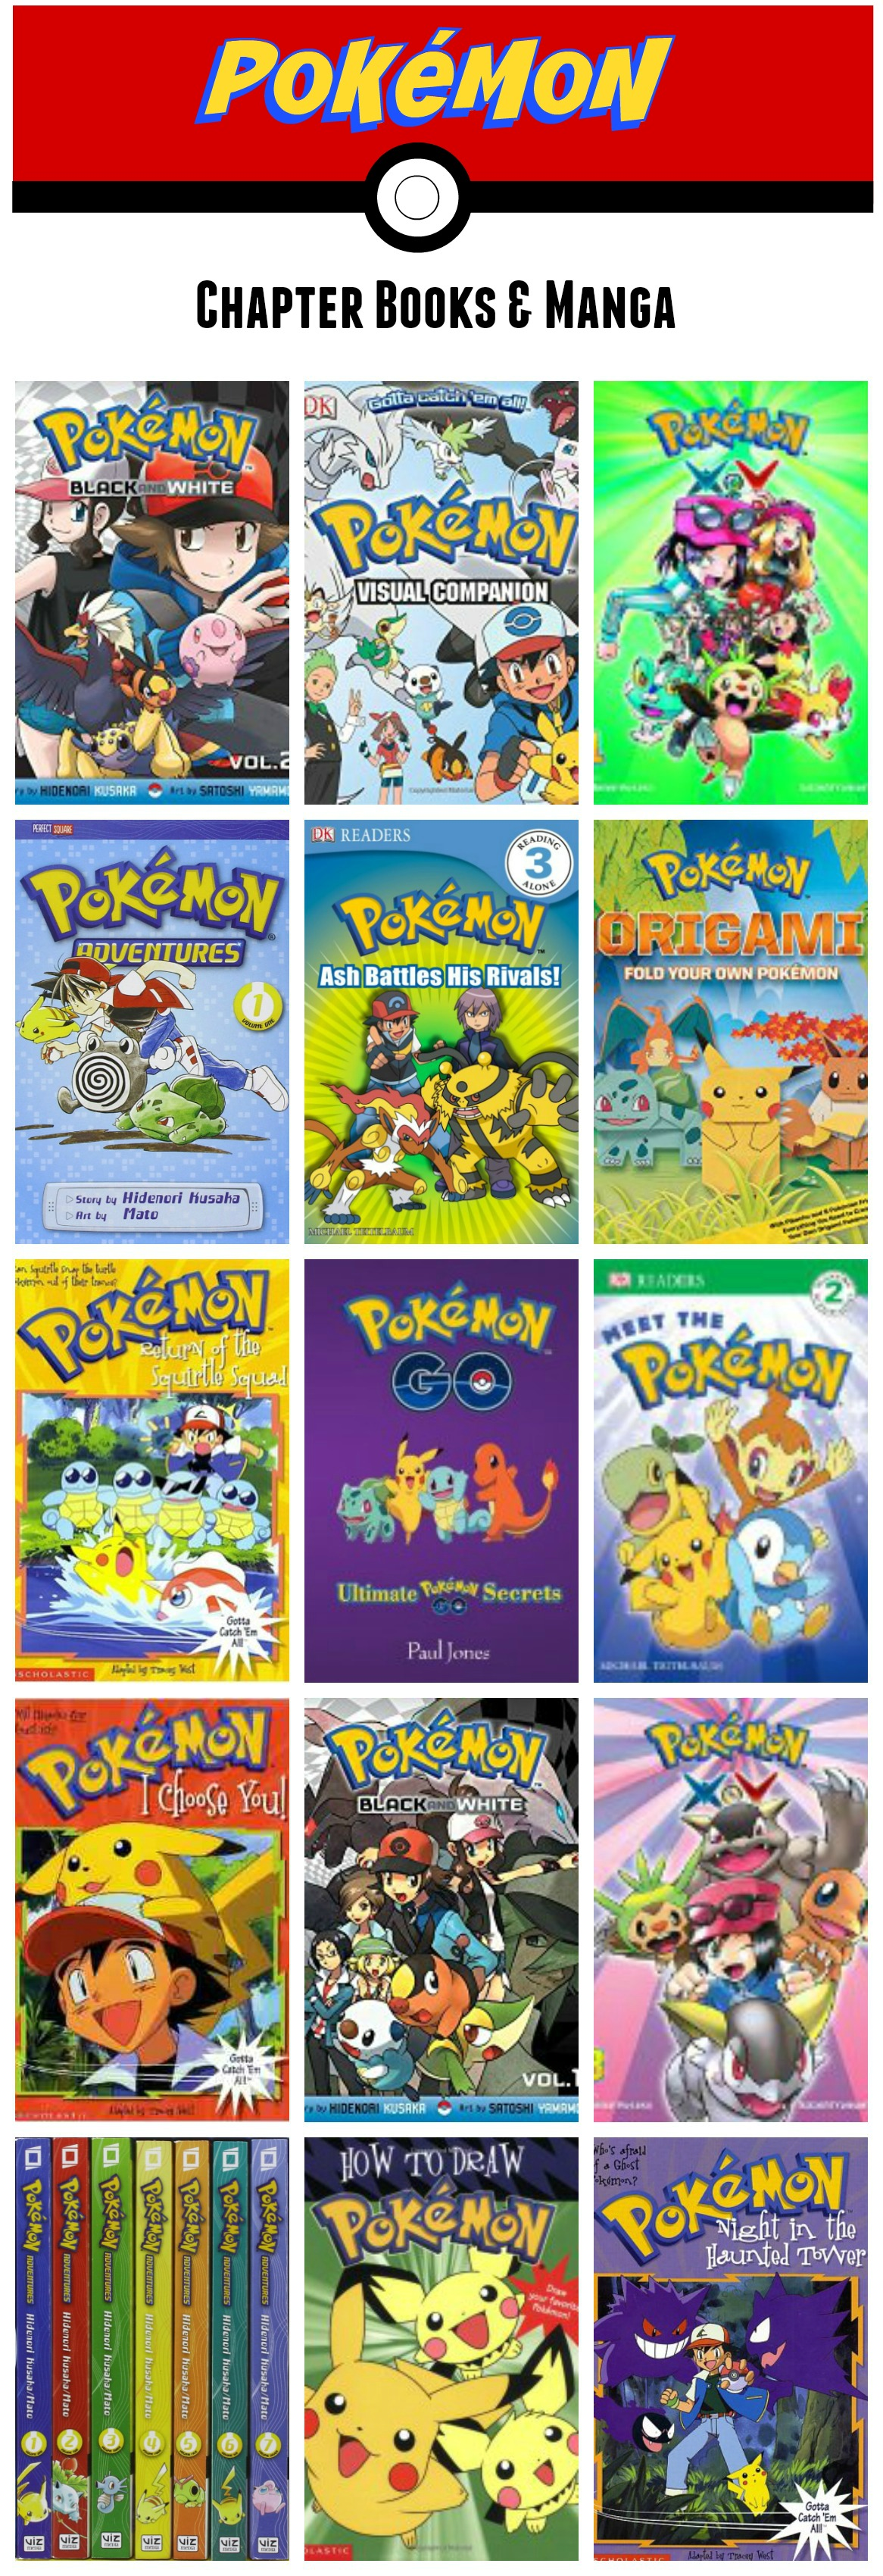 Pokemon chapter books and manga kids will love!  These books are perfect for ages 6-8, 9-12, and even tweens and teens love Manga.